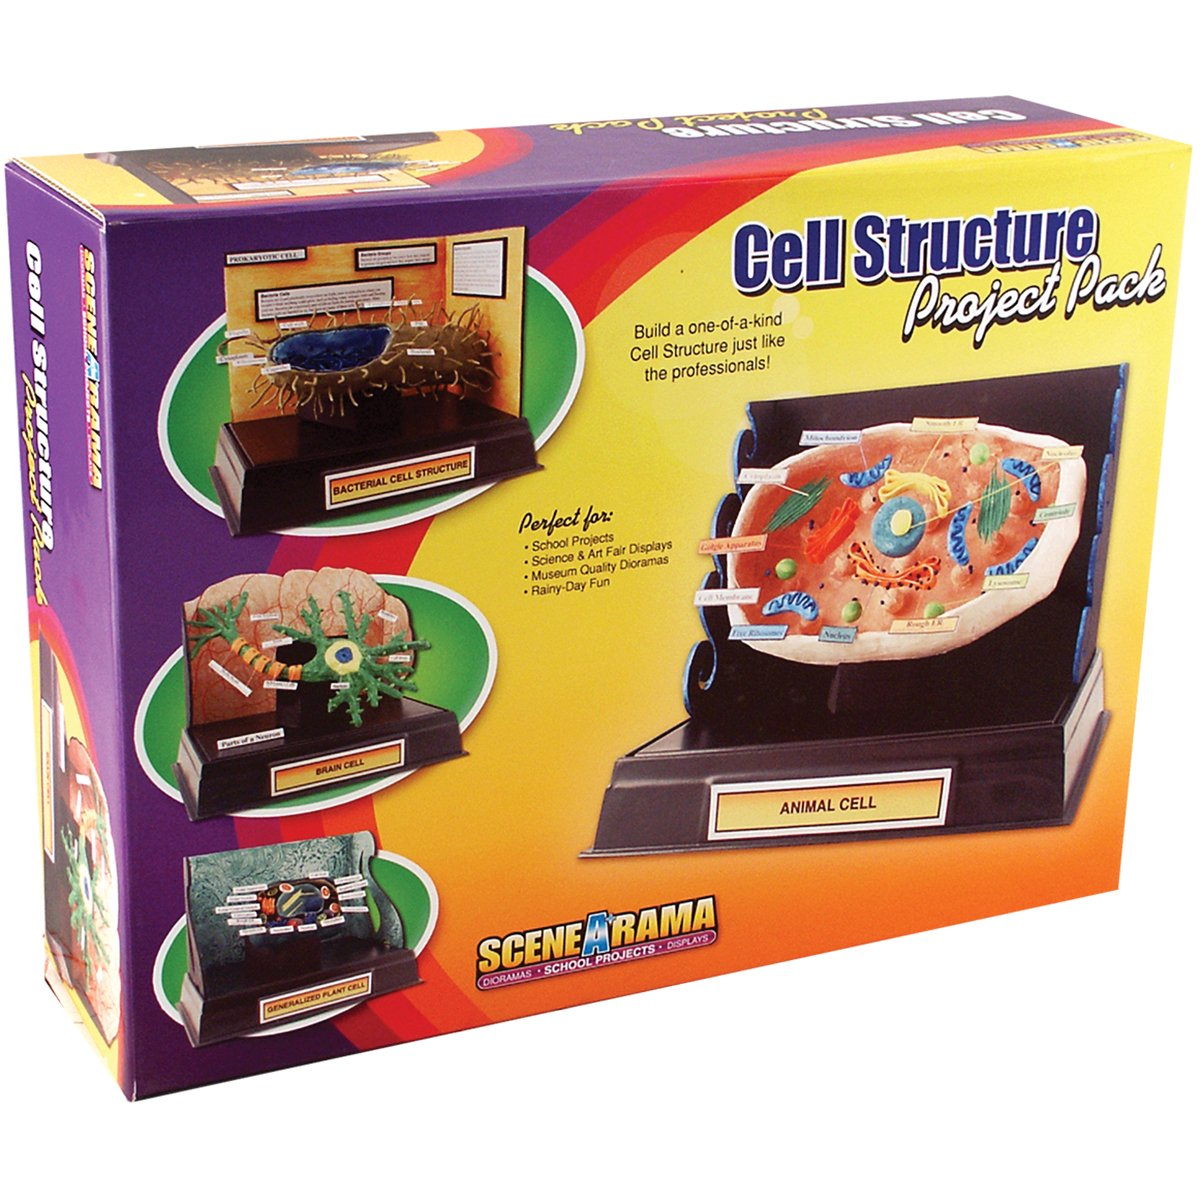 Amazoncom Woodland Scenics Project Pack Cell Structure